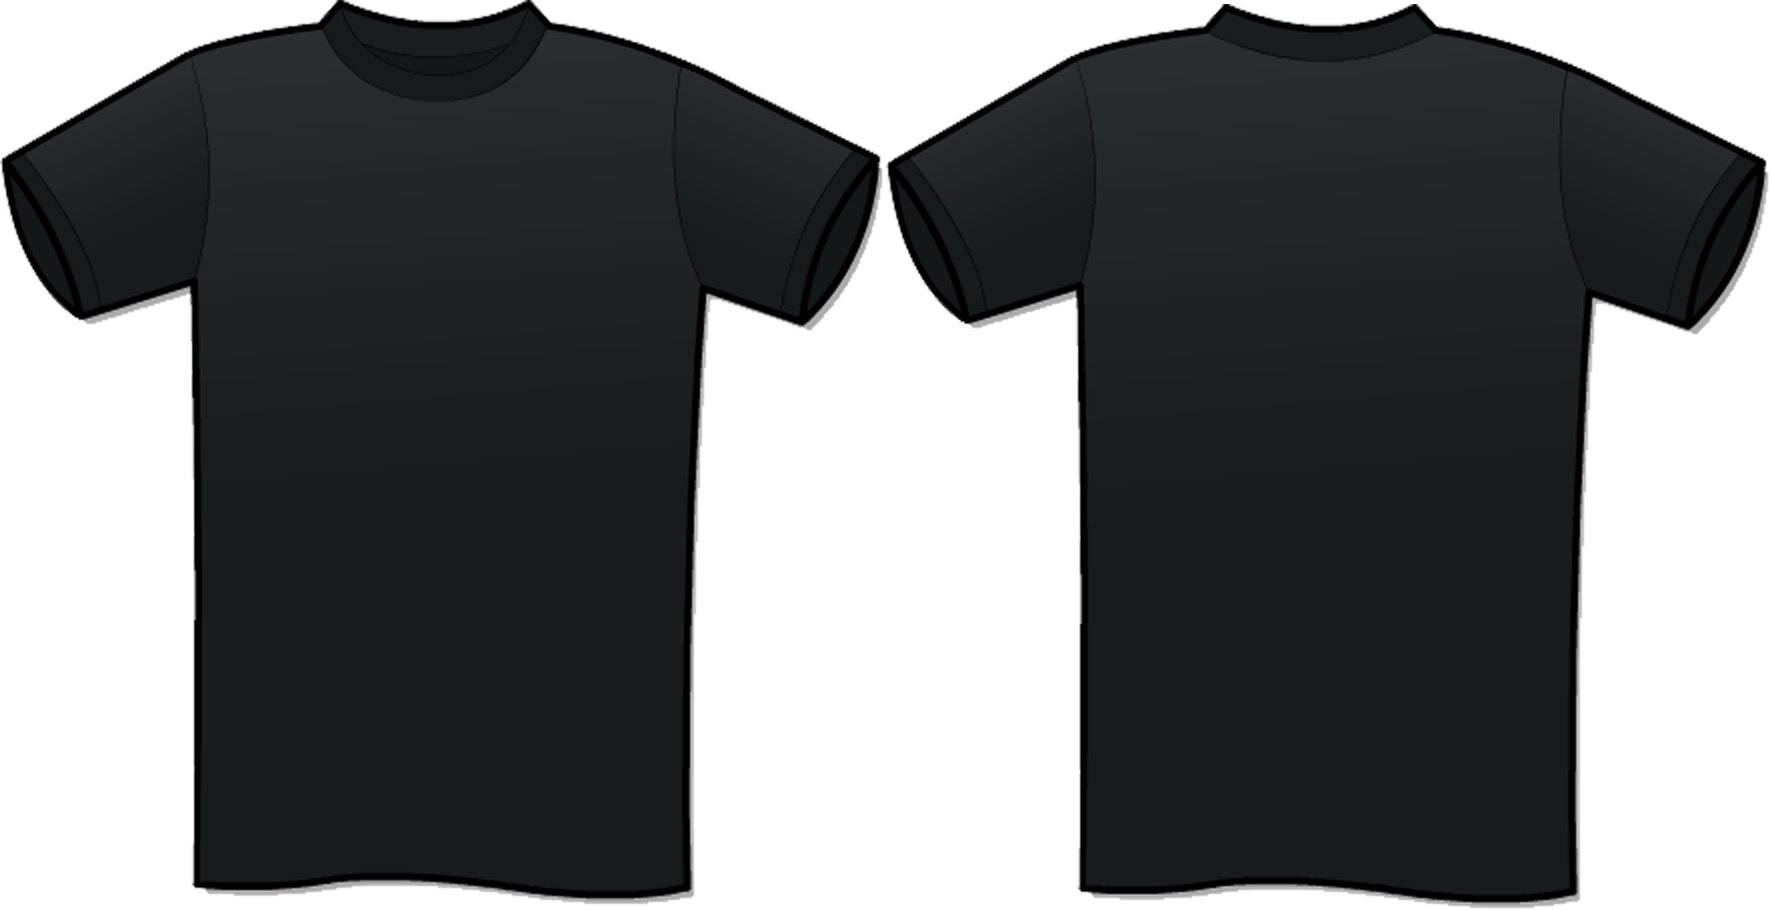 Tshirt template clipart best for Blank t shirt design template